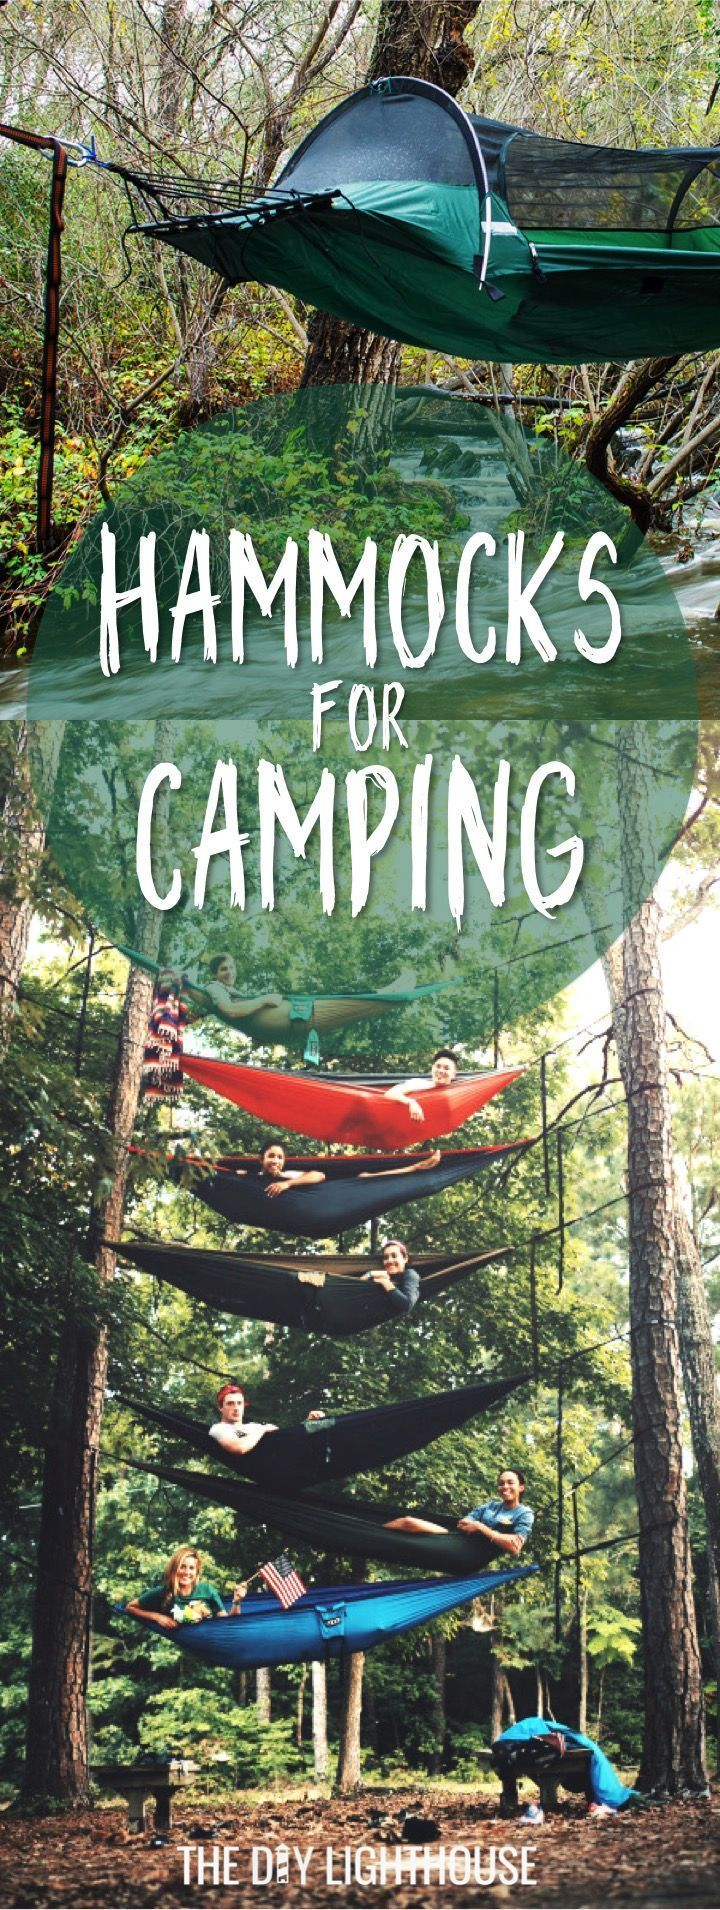 Hammock for camping | List of the 20 coolest hammocks ever including hammocks for camping and the backyard | Plus a DIY hammock tutorial | Coolest hammocks #18: This tent hammock takes camping to a whole new level! It's not quite glamping (glamour camping), but it's certainly camping with style! You'll for sure be the talk of the campground with this super cool tent thing. And… yep! I found it on Amazon so click here. Or check out a similar one by clicking here! | Fun for family..